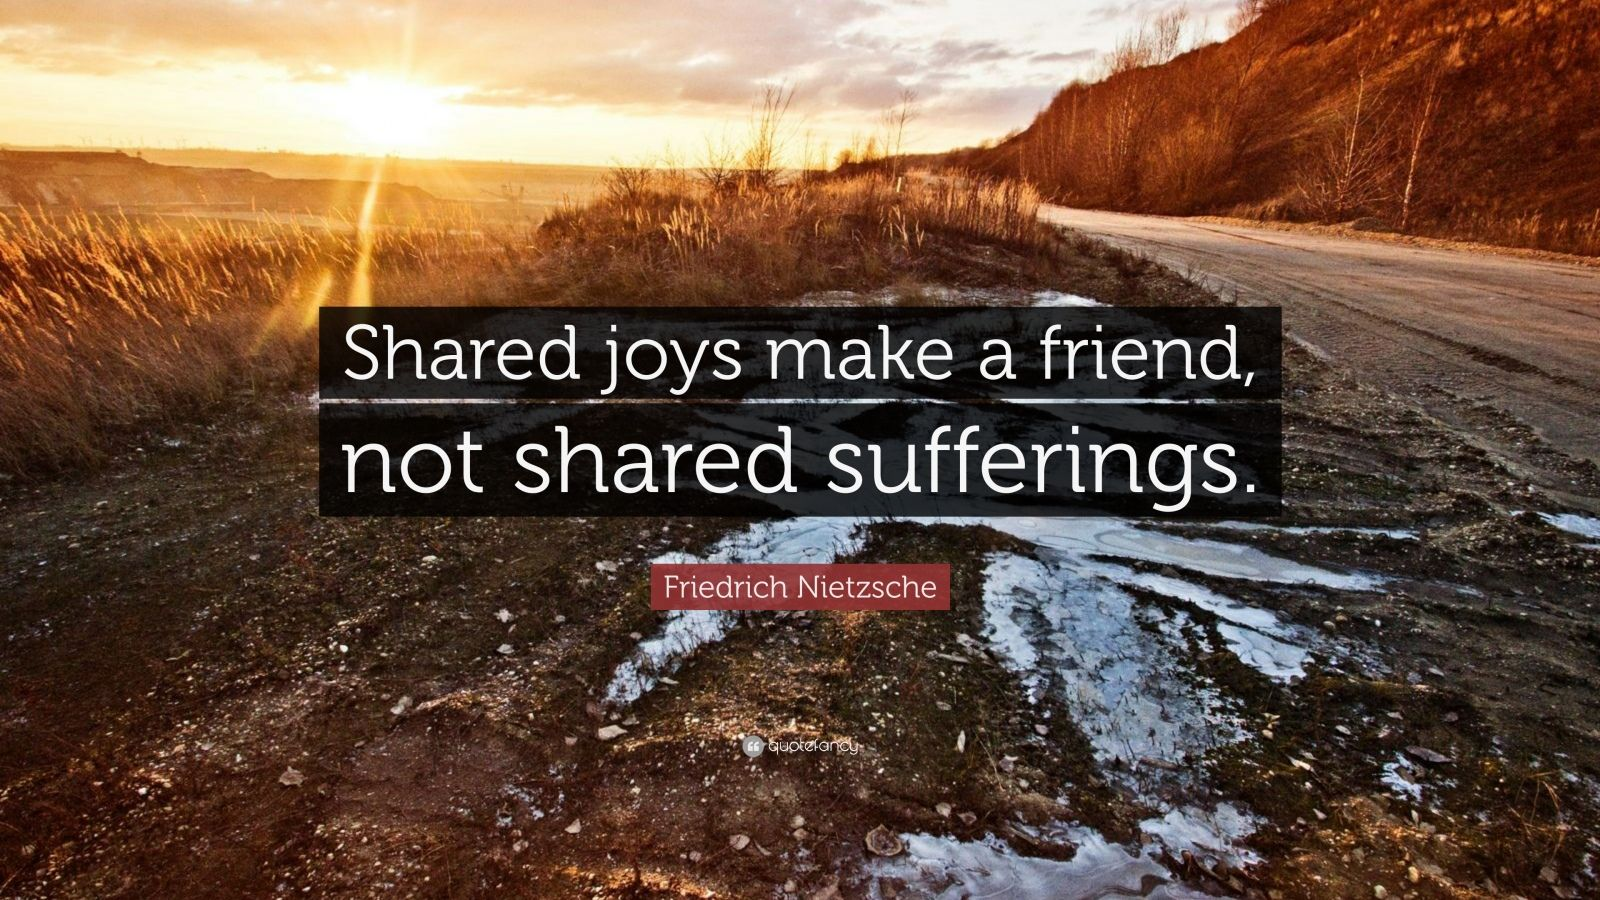 Shared joys make a friend, not shared sufferings.